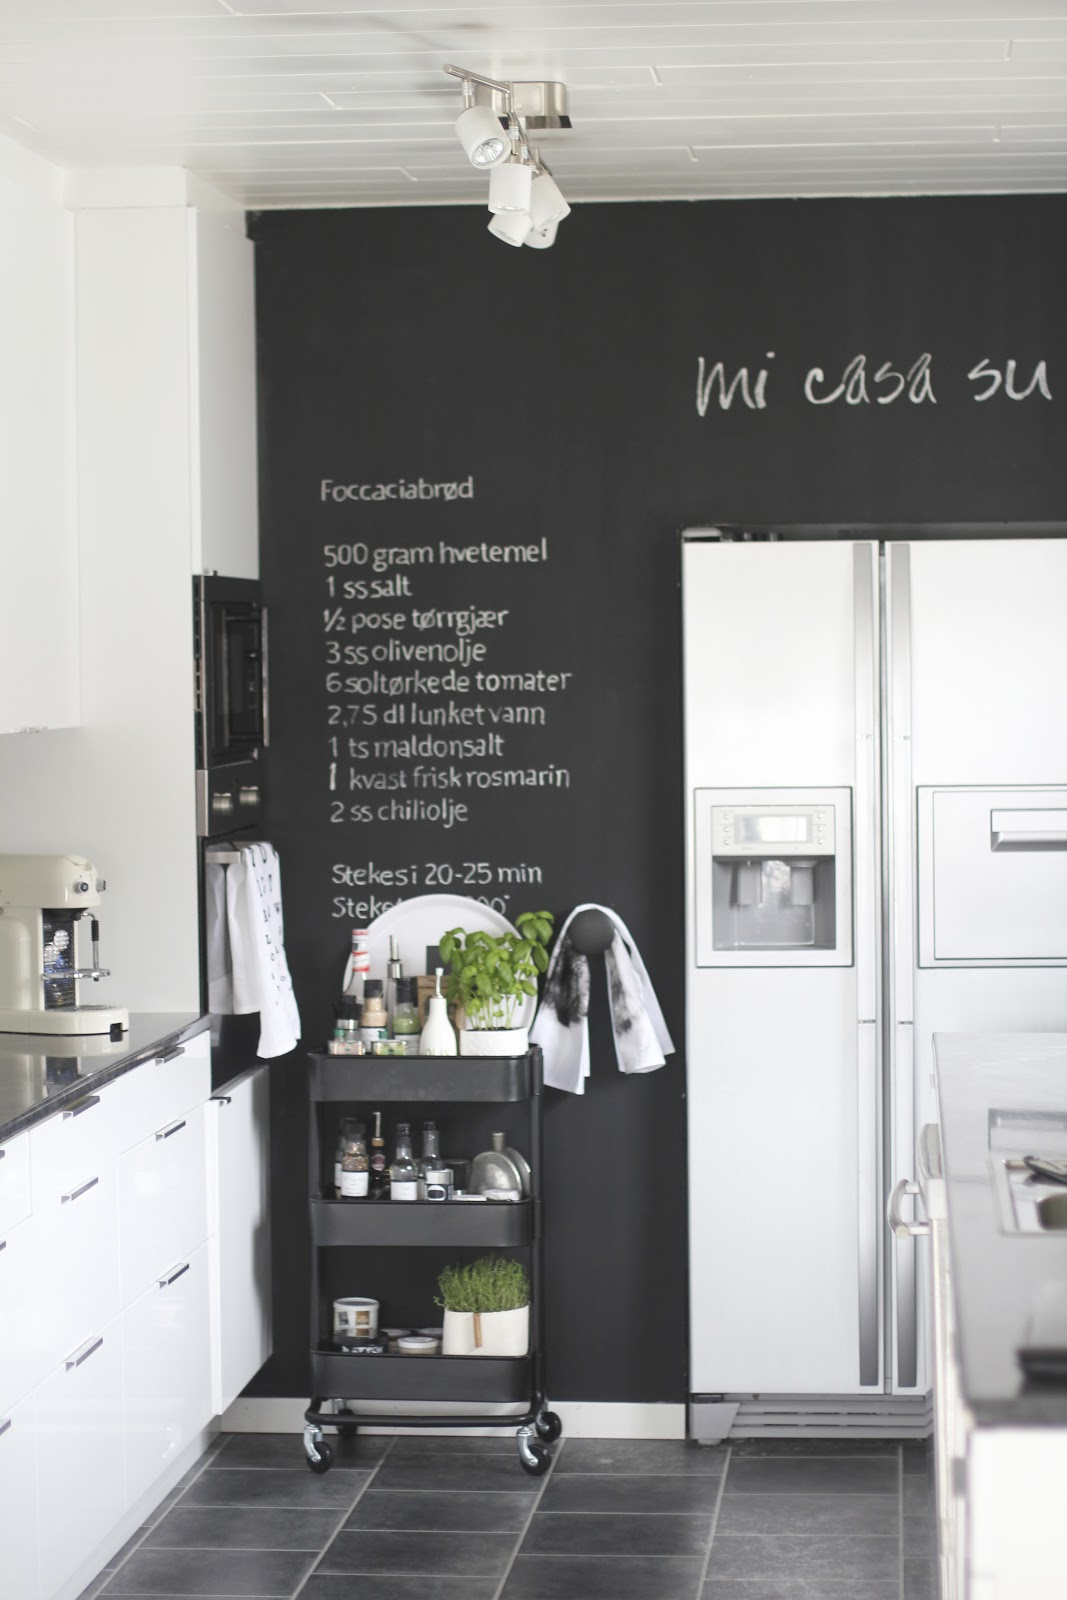 Img_0934 1067×1600 ピクセル  インスピレーション  Pinterest Amazing 2 Wall Kitchen Designs Design Decoration